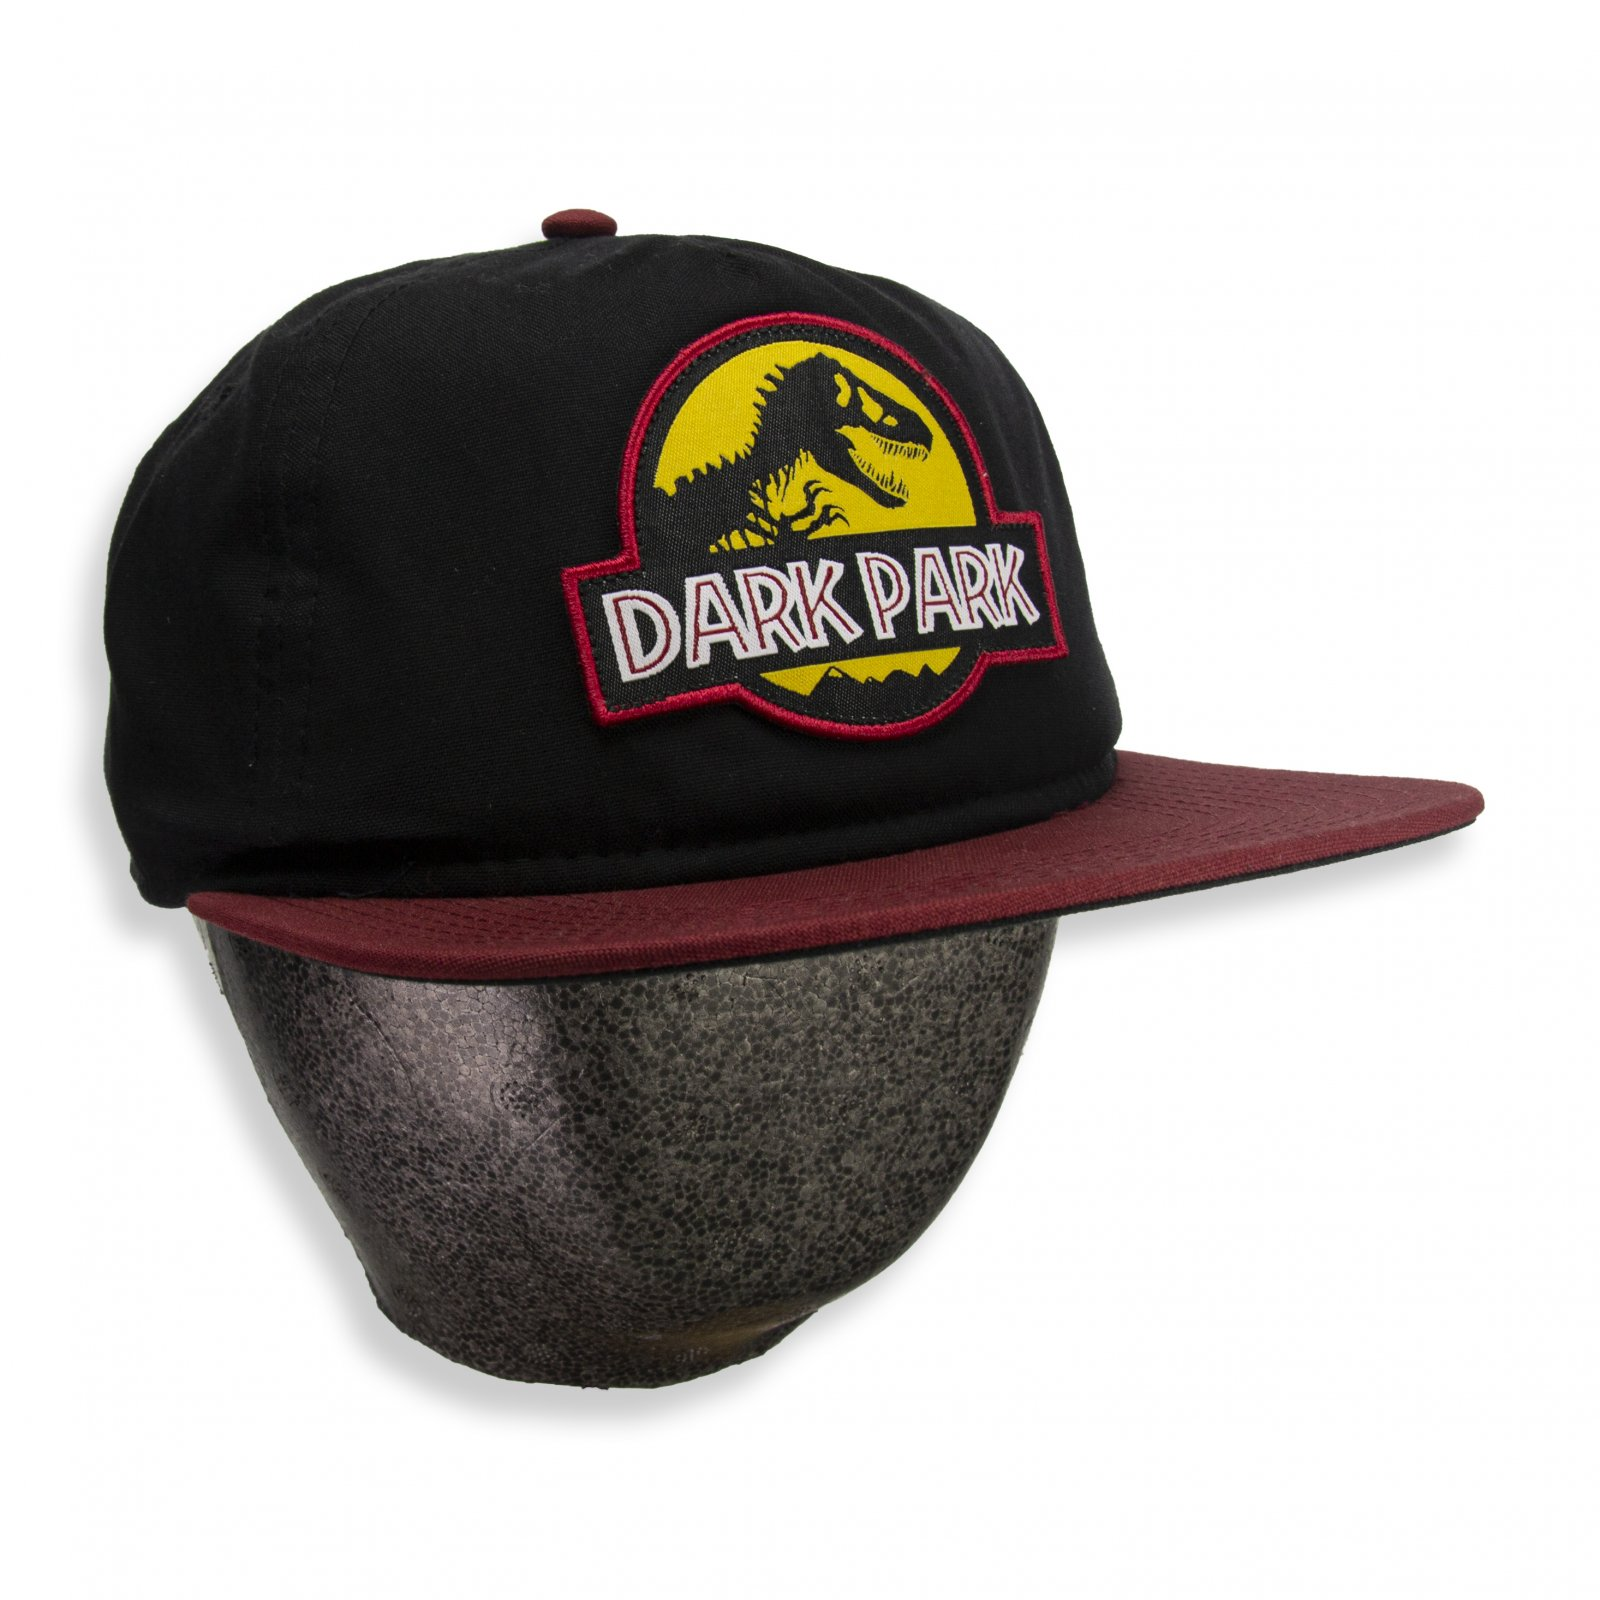 Dark Park Standard Issue Cap (Multiple Color Options)